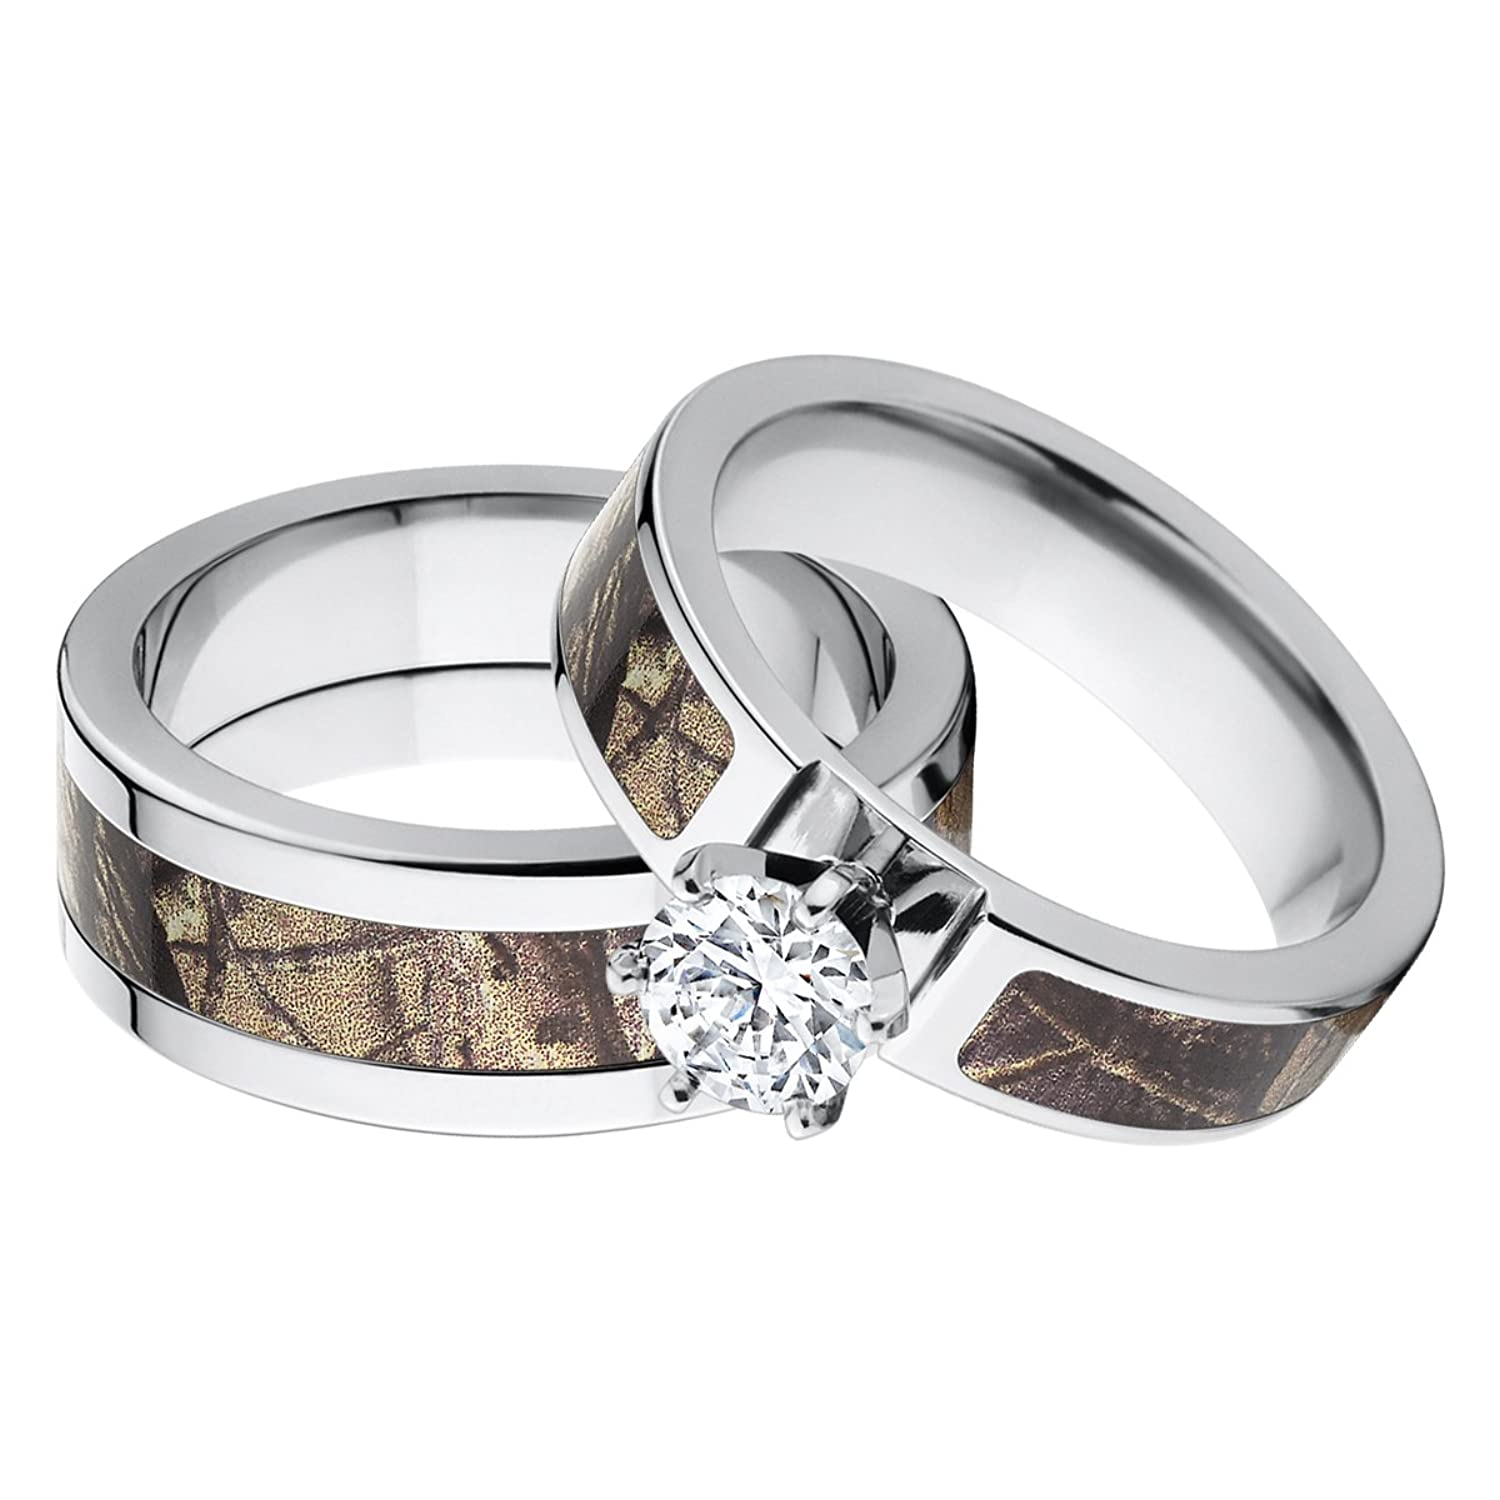 amazoncom his and hers matching realtree ap camouflage wedding ring set jewelry - Camouflage Wedding Rings